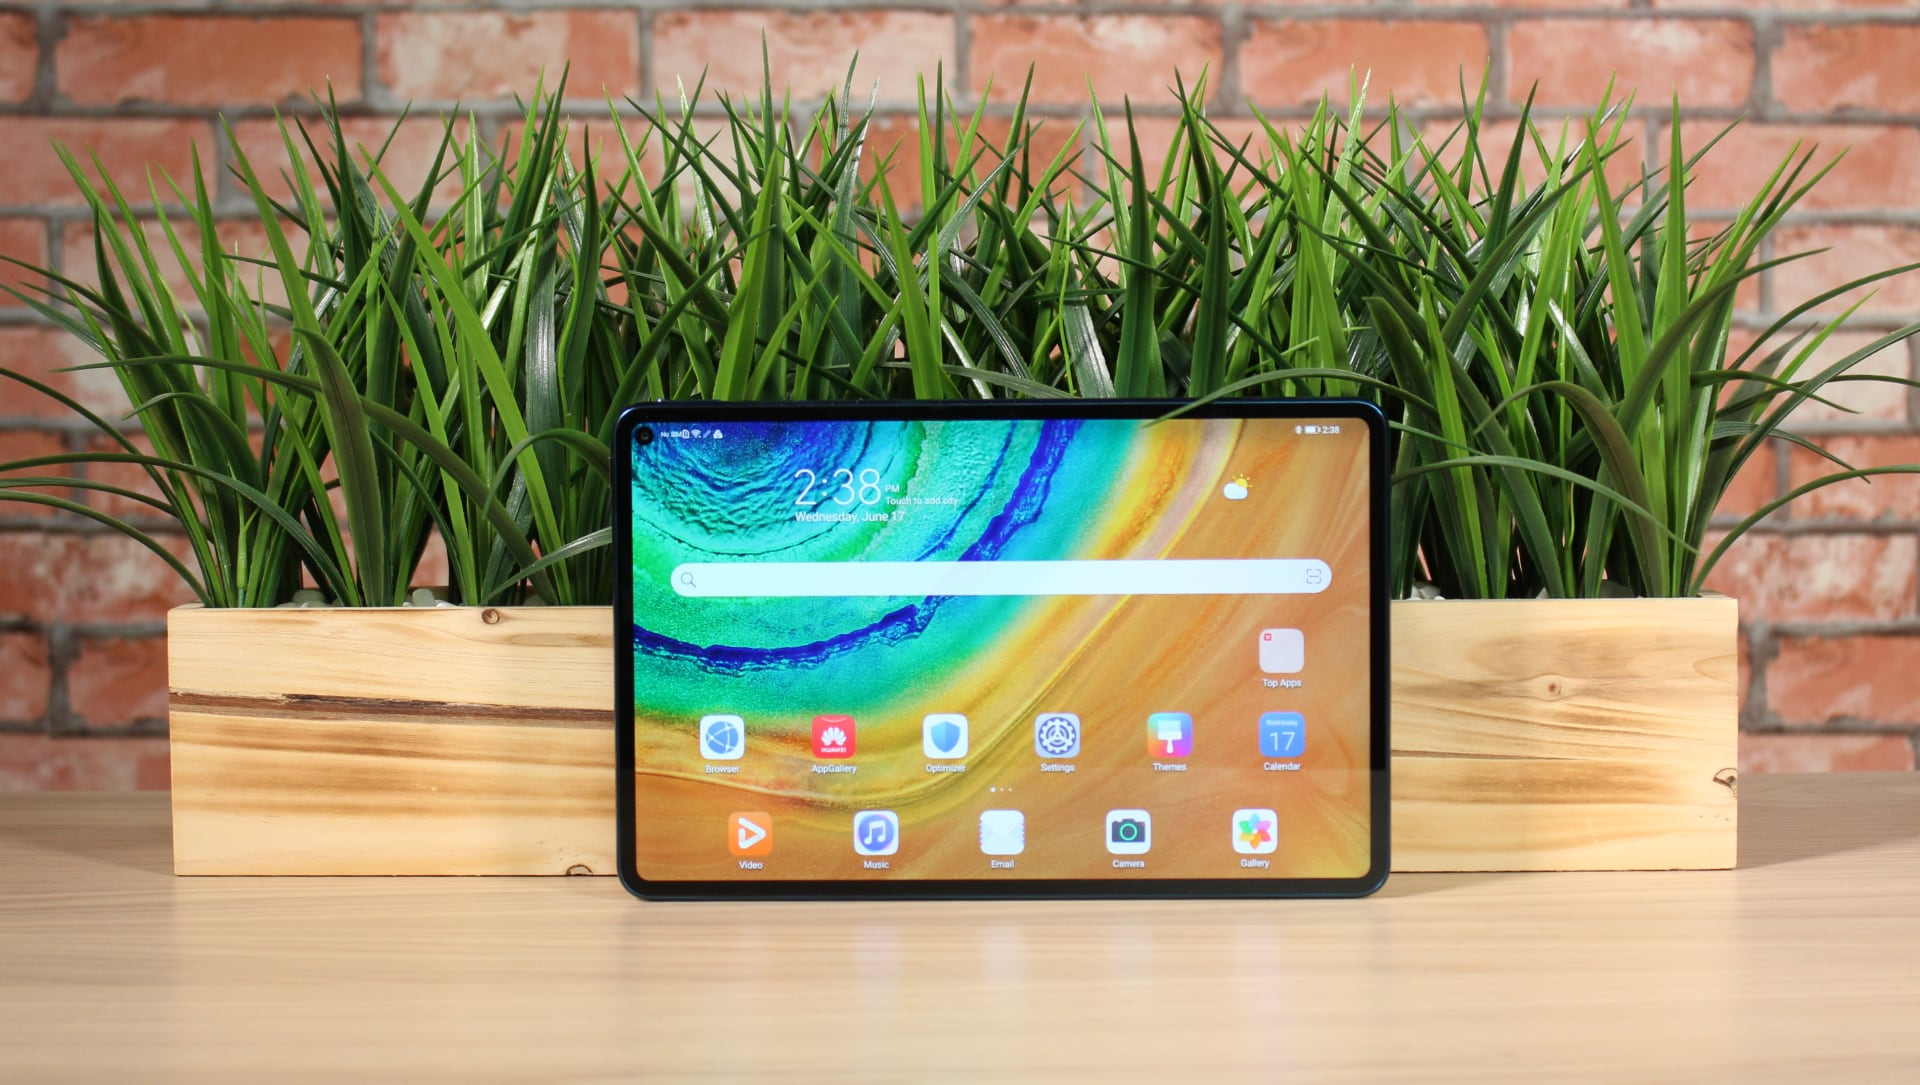 Huawei MatePad Pro 2 5G looks likely soon, and it may have 40W charging